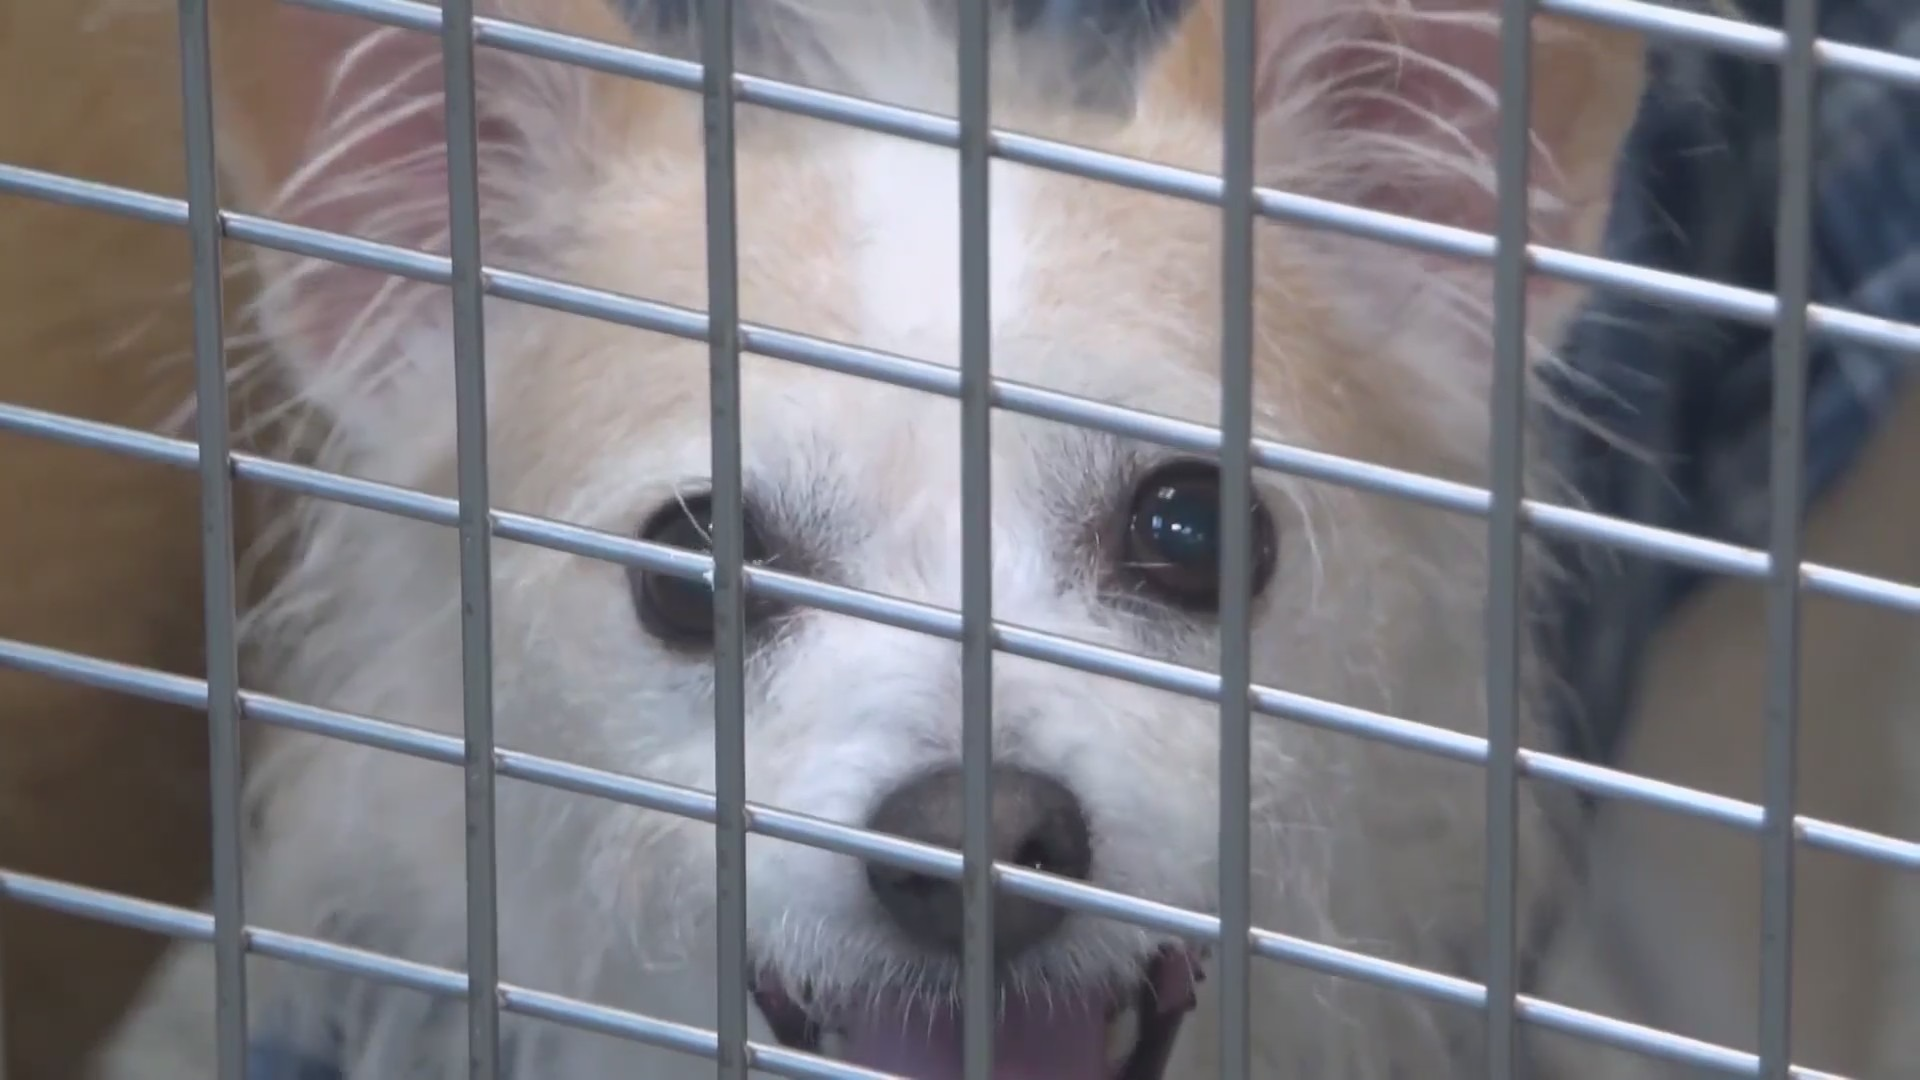 Local animal shelter getting ready for influx when eviction moratorium ends